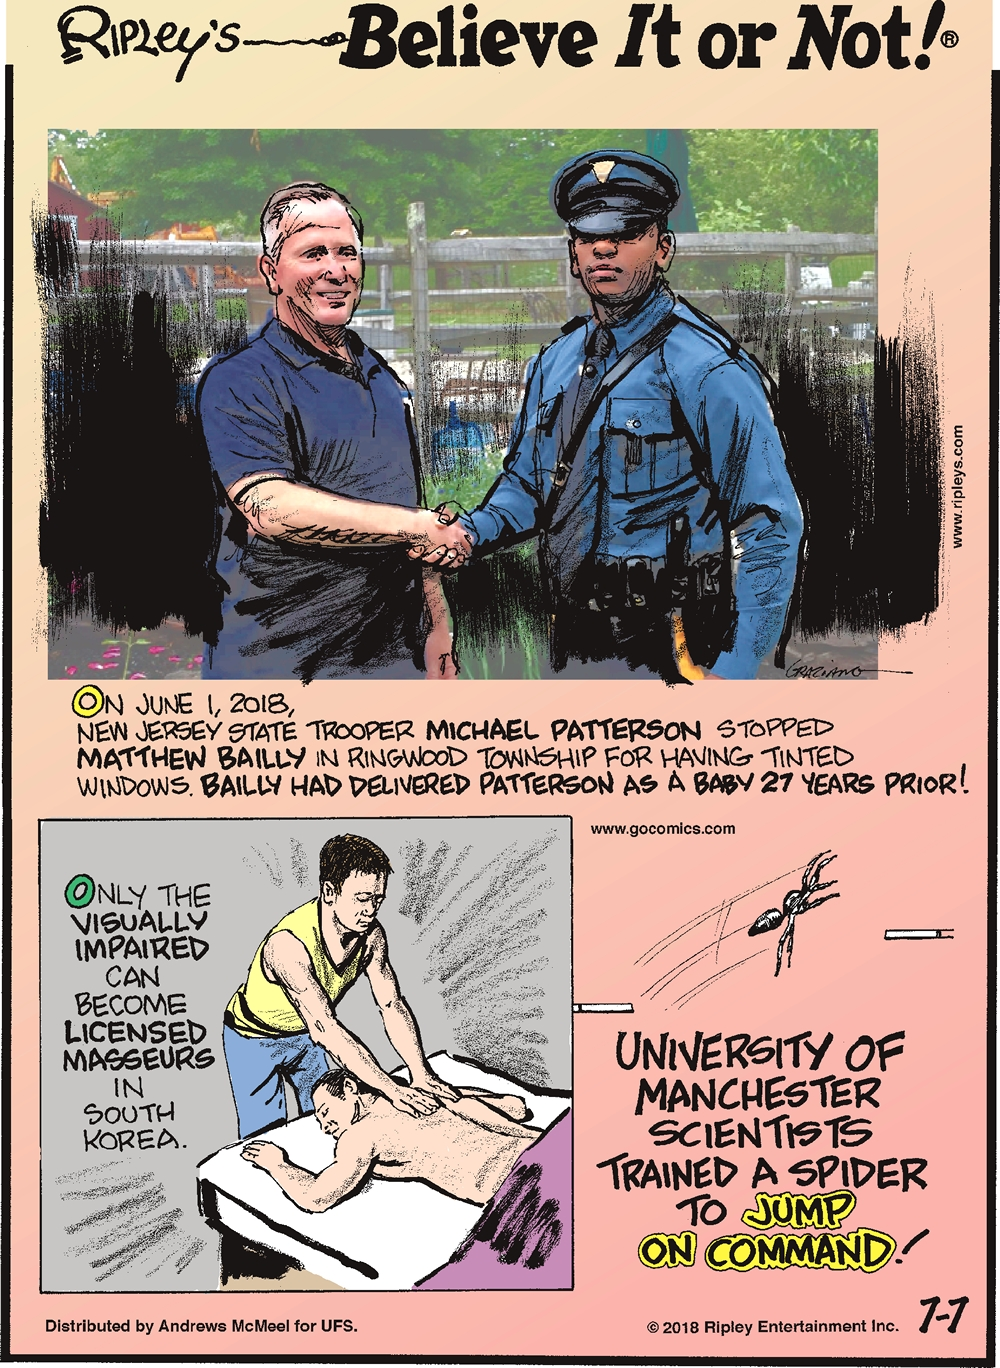 On June 1, 2018, New Jersey state trooper Michael Patterson stopped Matthew Bailly in Ringwood Township for having tinted windows. Bailly had delivered Patterson as a baby 27 years prior!-------------------- Only the visually impaired can become licensed masseurs in South Korea.-------------------- University of Manchester scientists trained a spider to jump on command!